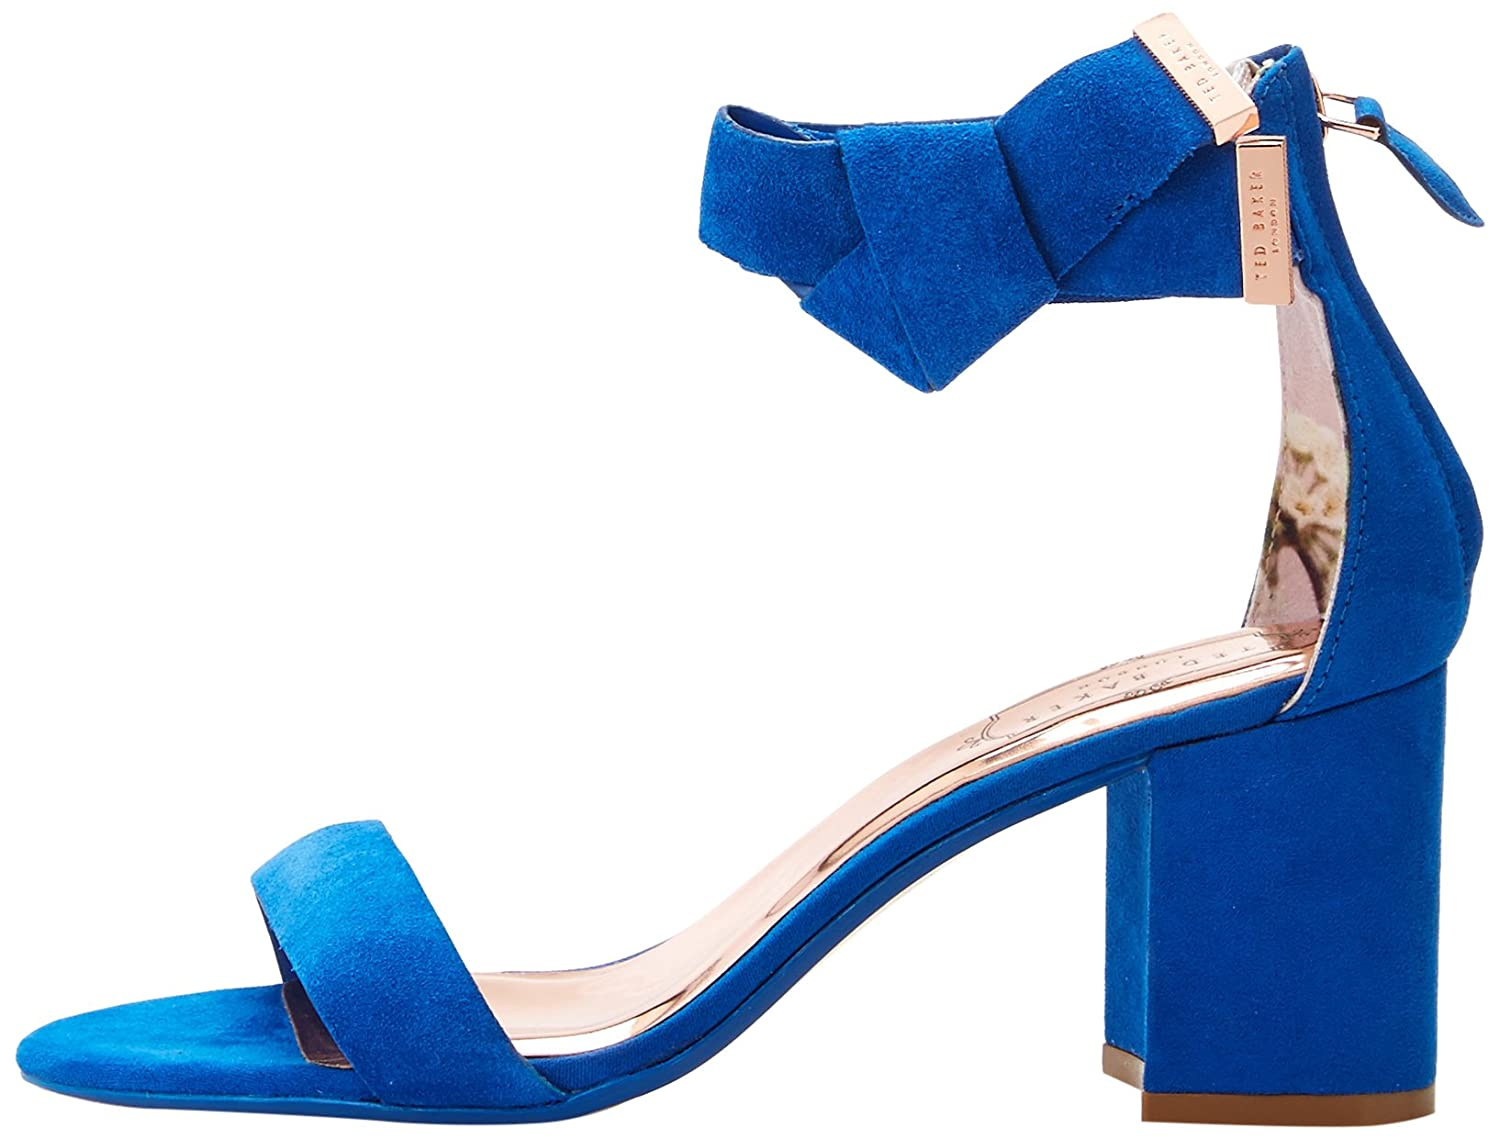 aeecf3a404 Ted Baker Women's Kerria Sandal: Buy Online at Low Prices in India -  Amazon.in